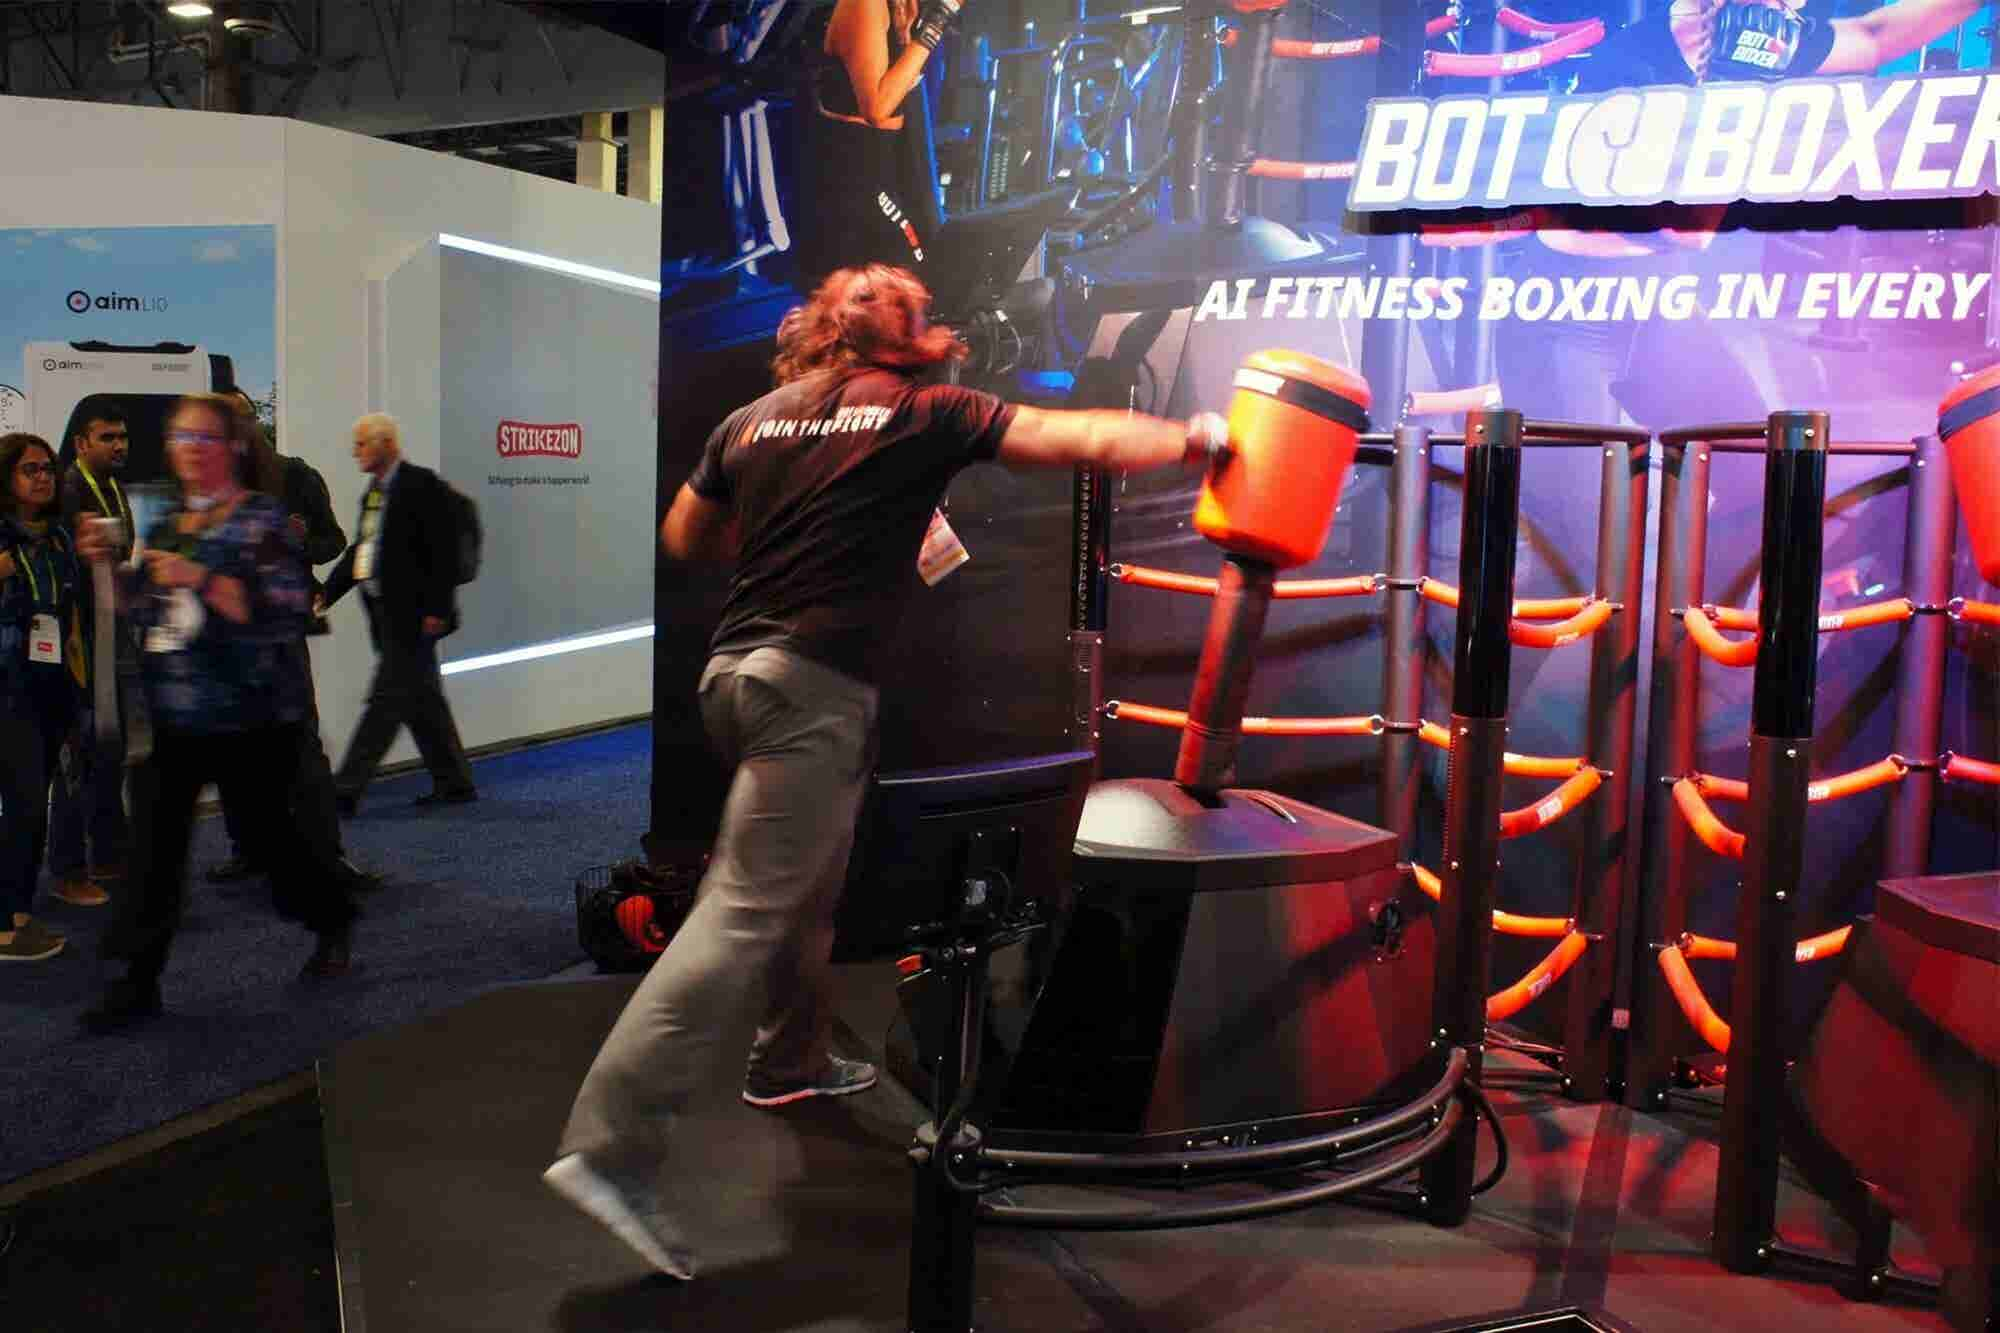 I Just Had My Ass Handed to Me by a Boxing Robot